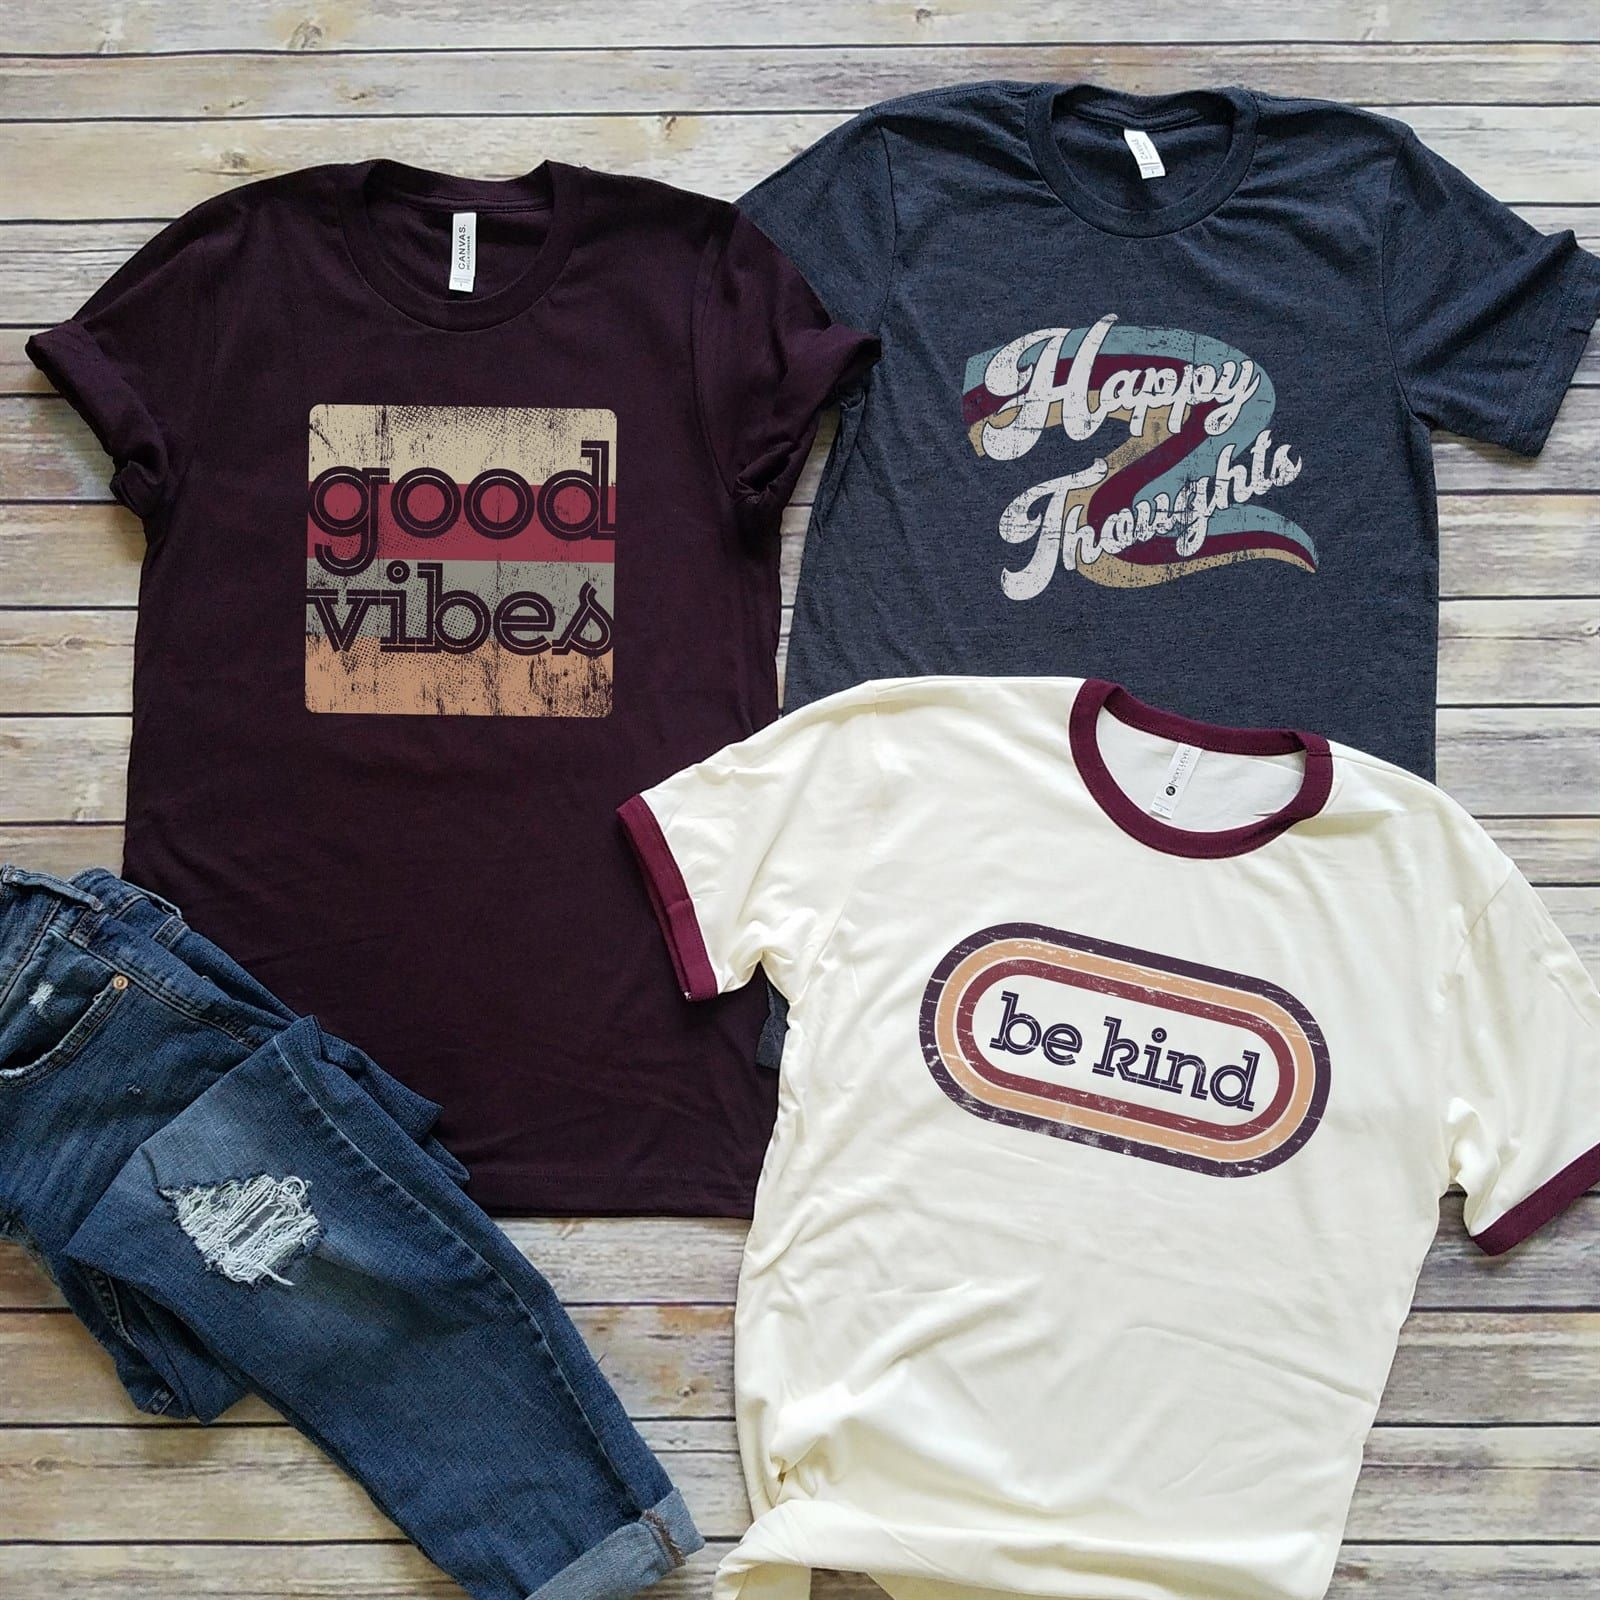 Mom Inspired Graphic Tees Vintage Tee Shirts Vintage Shirt Design Tee Shirt Outfit